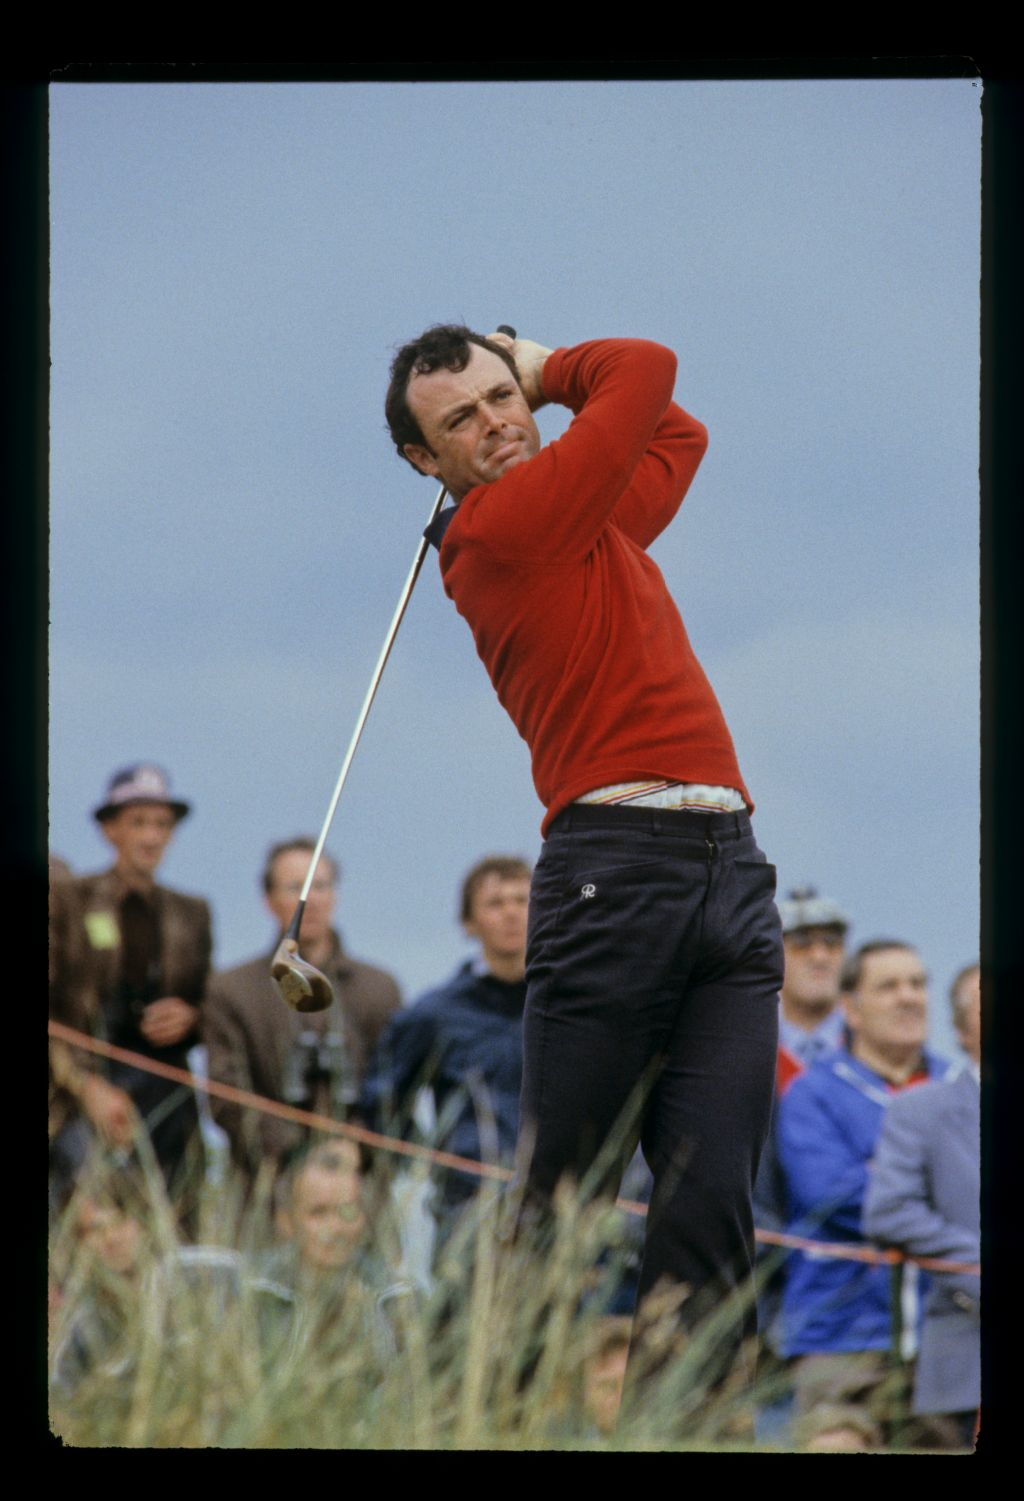 English golfer Ian Mosey driving at the 1980 Open Championship